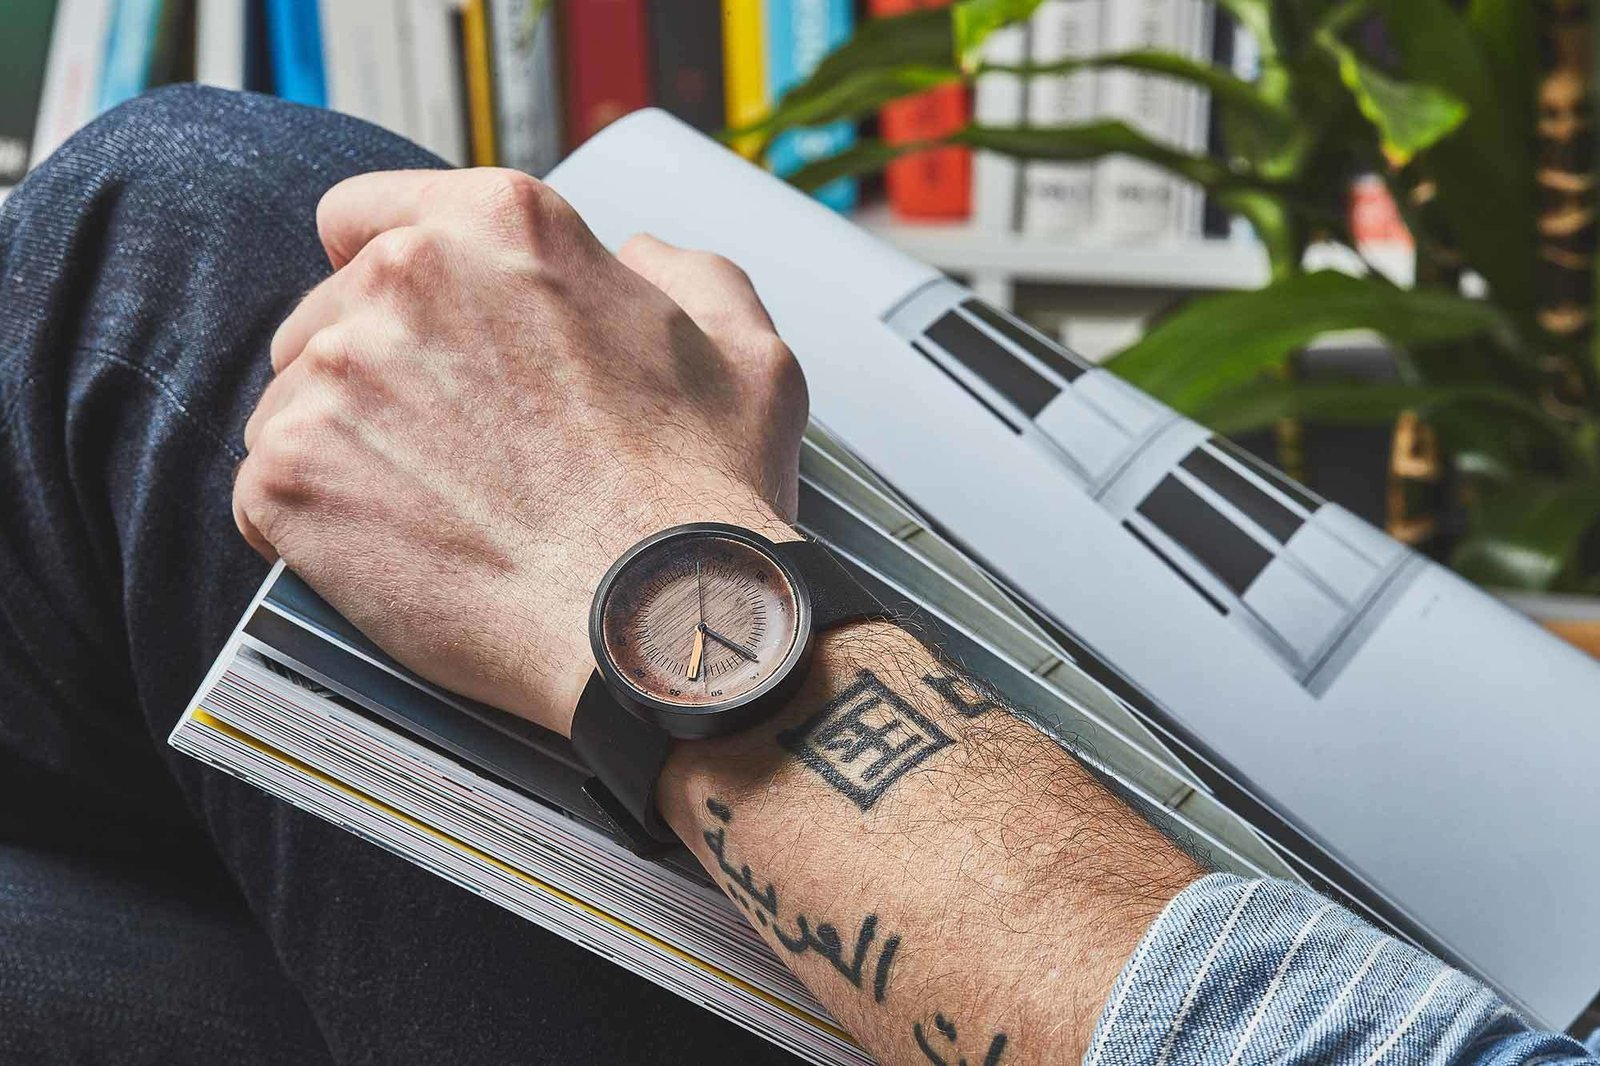 Grovemade Launches Watch 02 - Photo 1 of 5